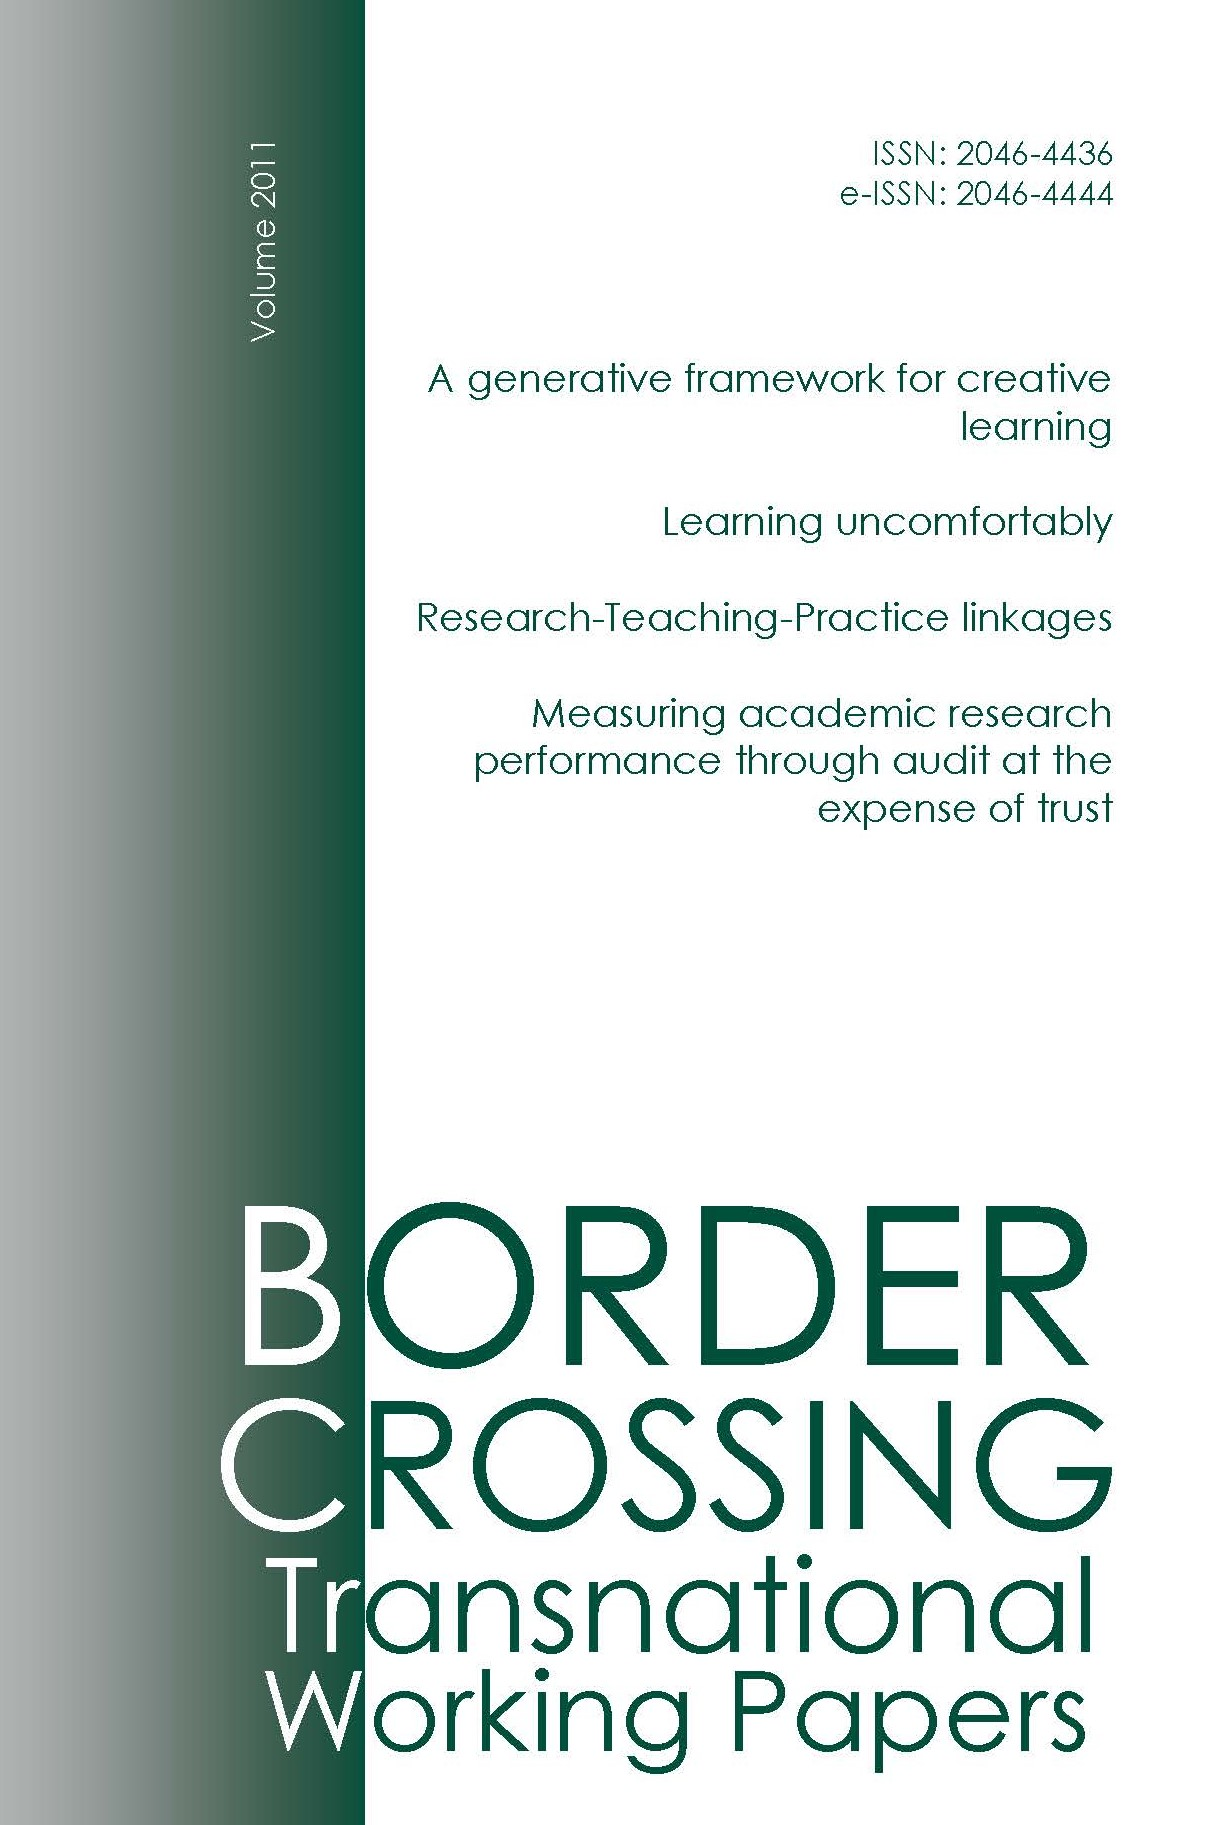 Border Crossing Transnational Working Papers 2011